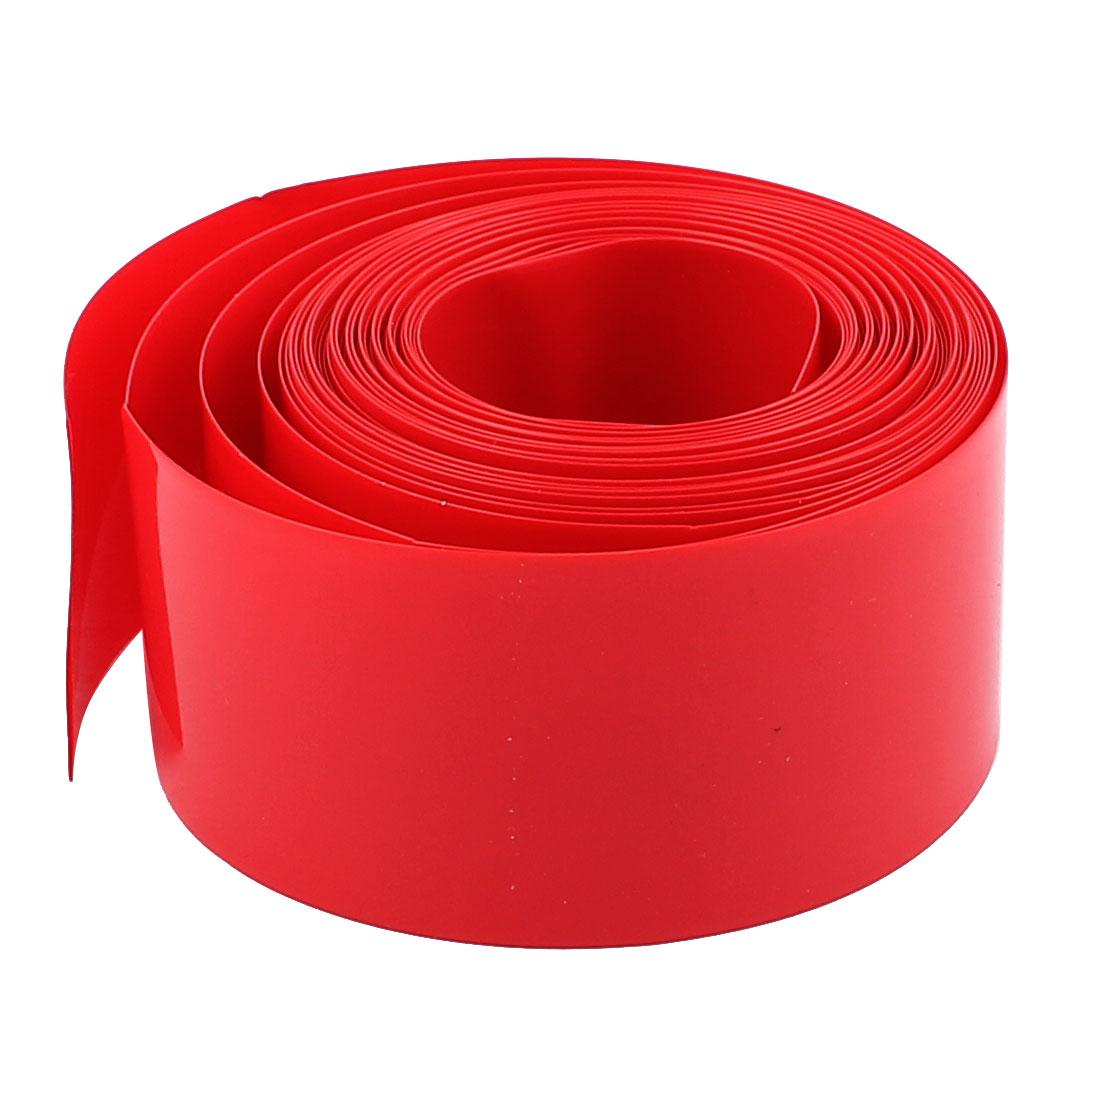 5m x 18.5mm Dia Red PVC Insulated Heat Shrink Tube Battery Protective Casing